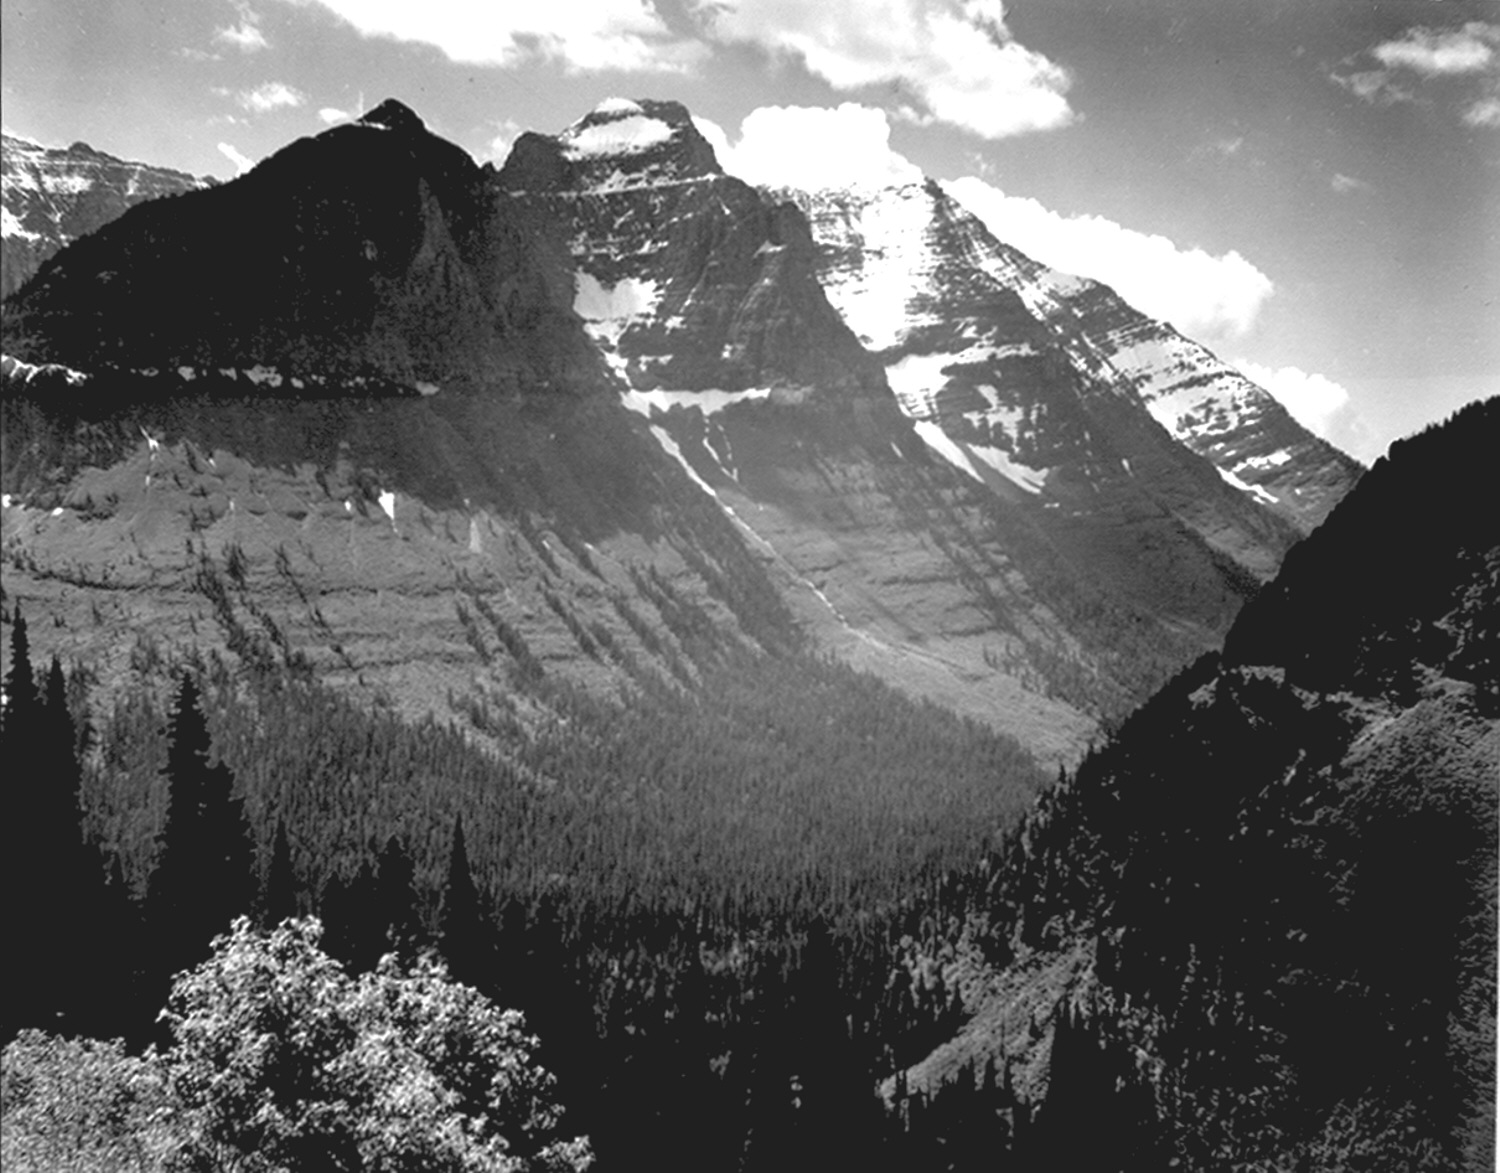 Ansel Adams Photographs | National Archives